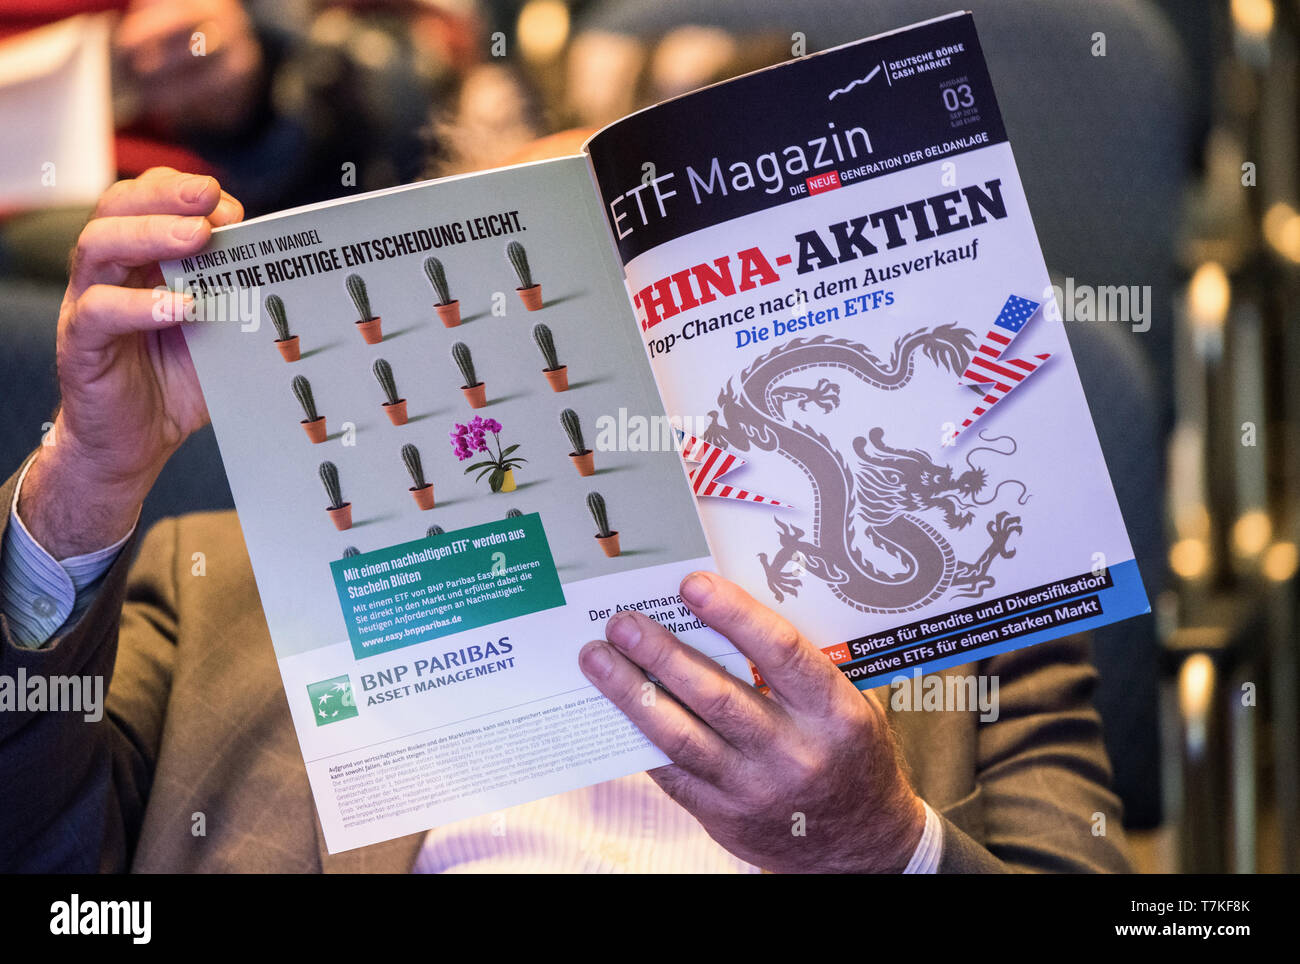 """08 May 2019, Hessen, Frankfurt/Main: At the Annual General Meeting, a shareholder holds the business magazine """"ETF Magazin"""" in his hands. The Annual General Meeting of Deutsche Börse AG is held in the Jahrhunderthalle Frankfurt. Photo: Andreas Arnold/dpa Stock Photo"""